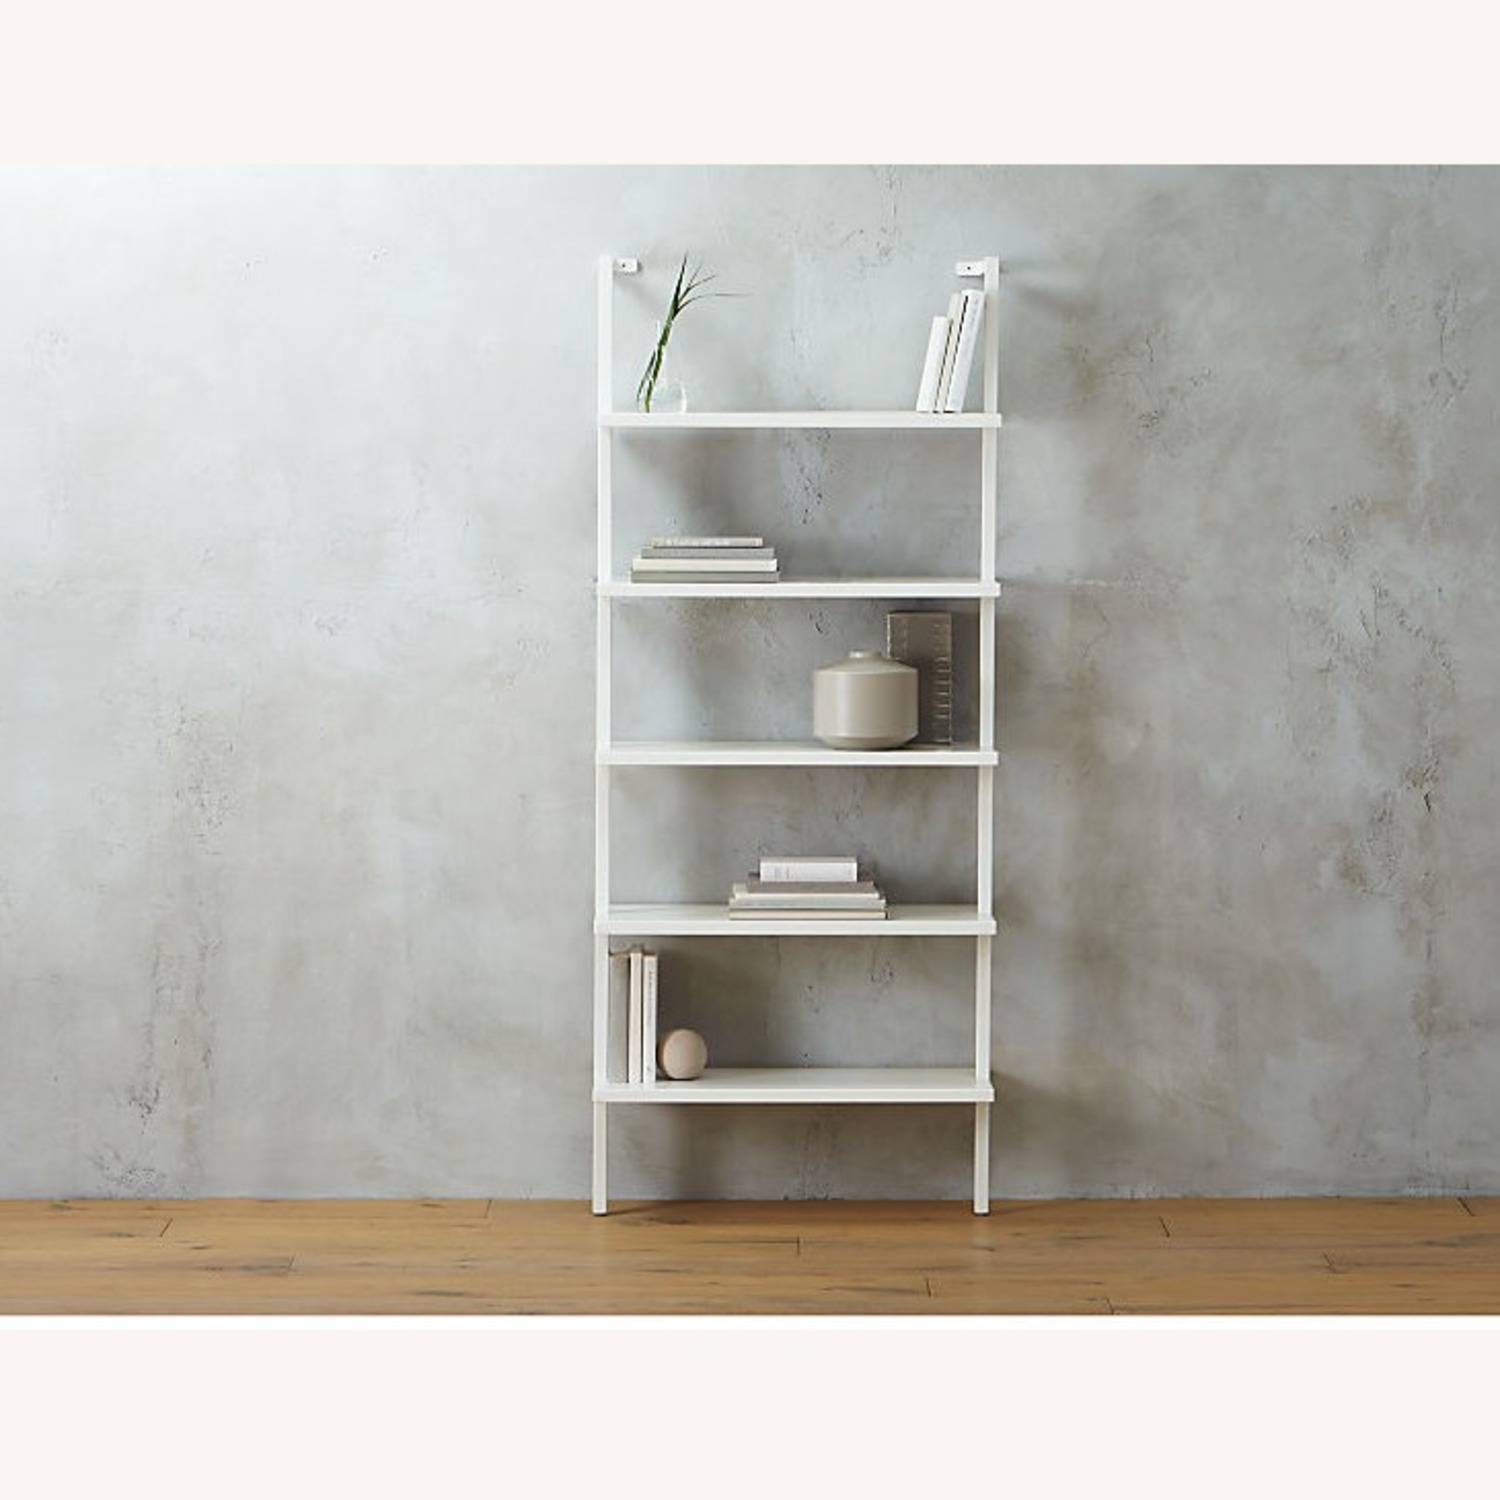 CB2 Stairway White Wall Mounted Bookcase - image-1